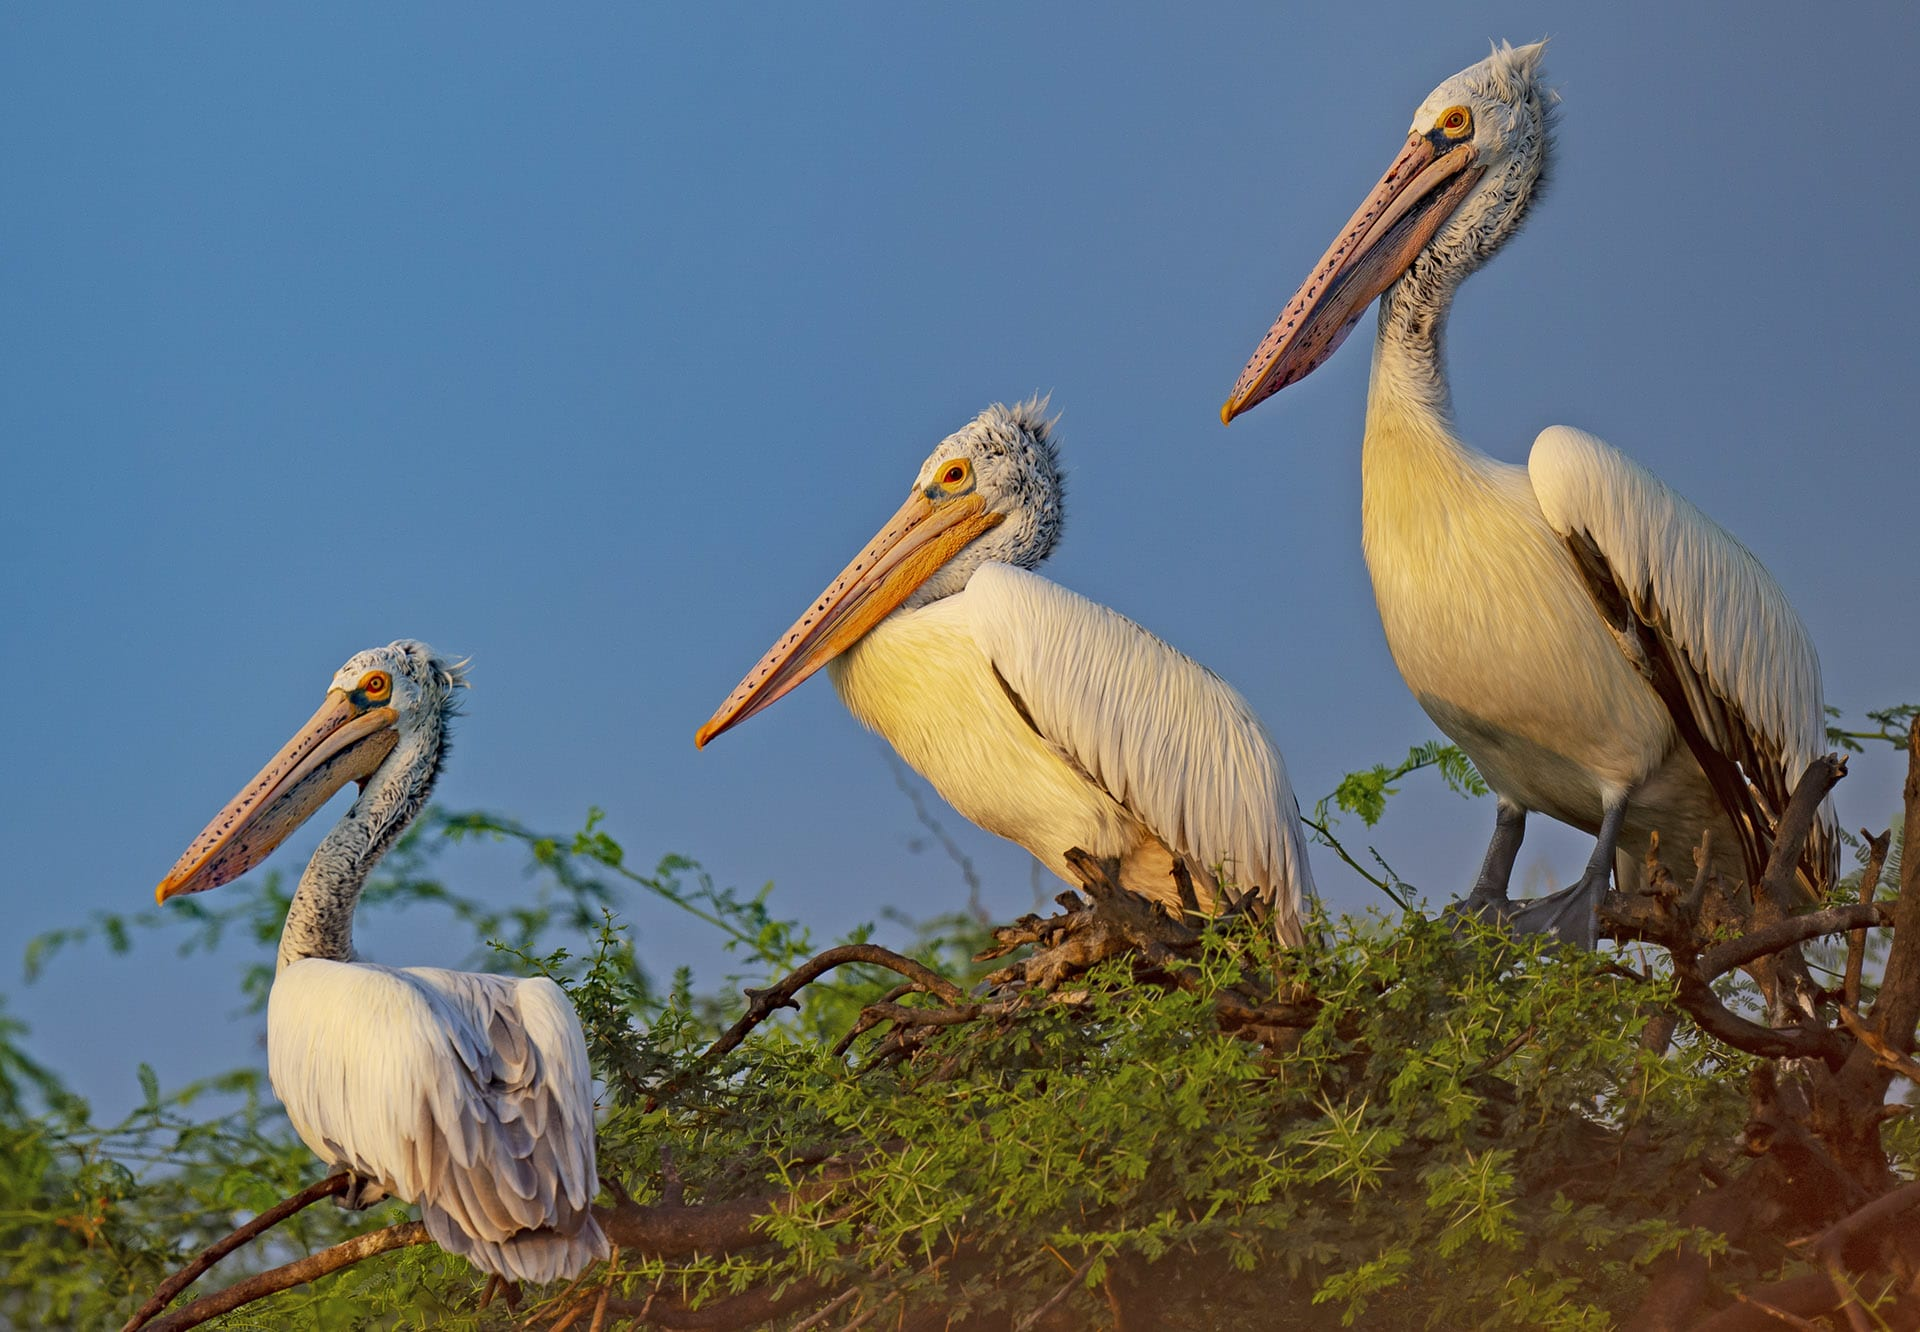 spot-billed pelicans at Kolleru Lake in Andhra Pradesh are threatened by excessive fishing and industrial pollution